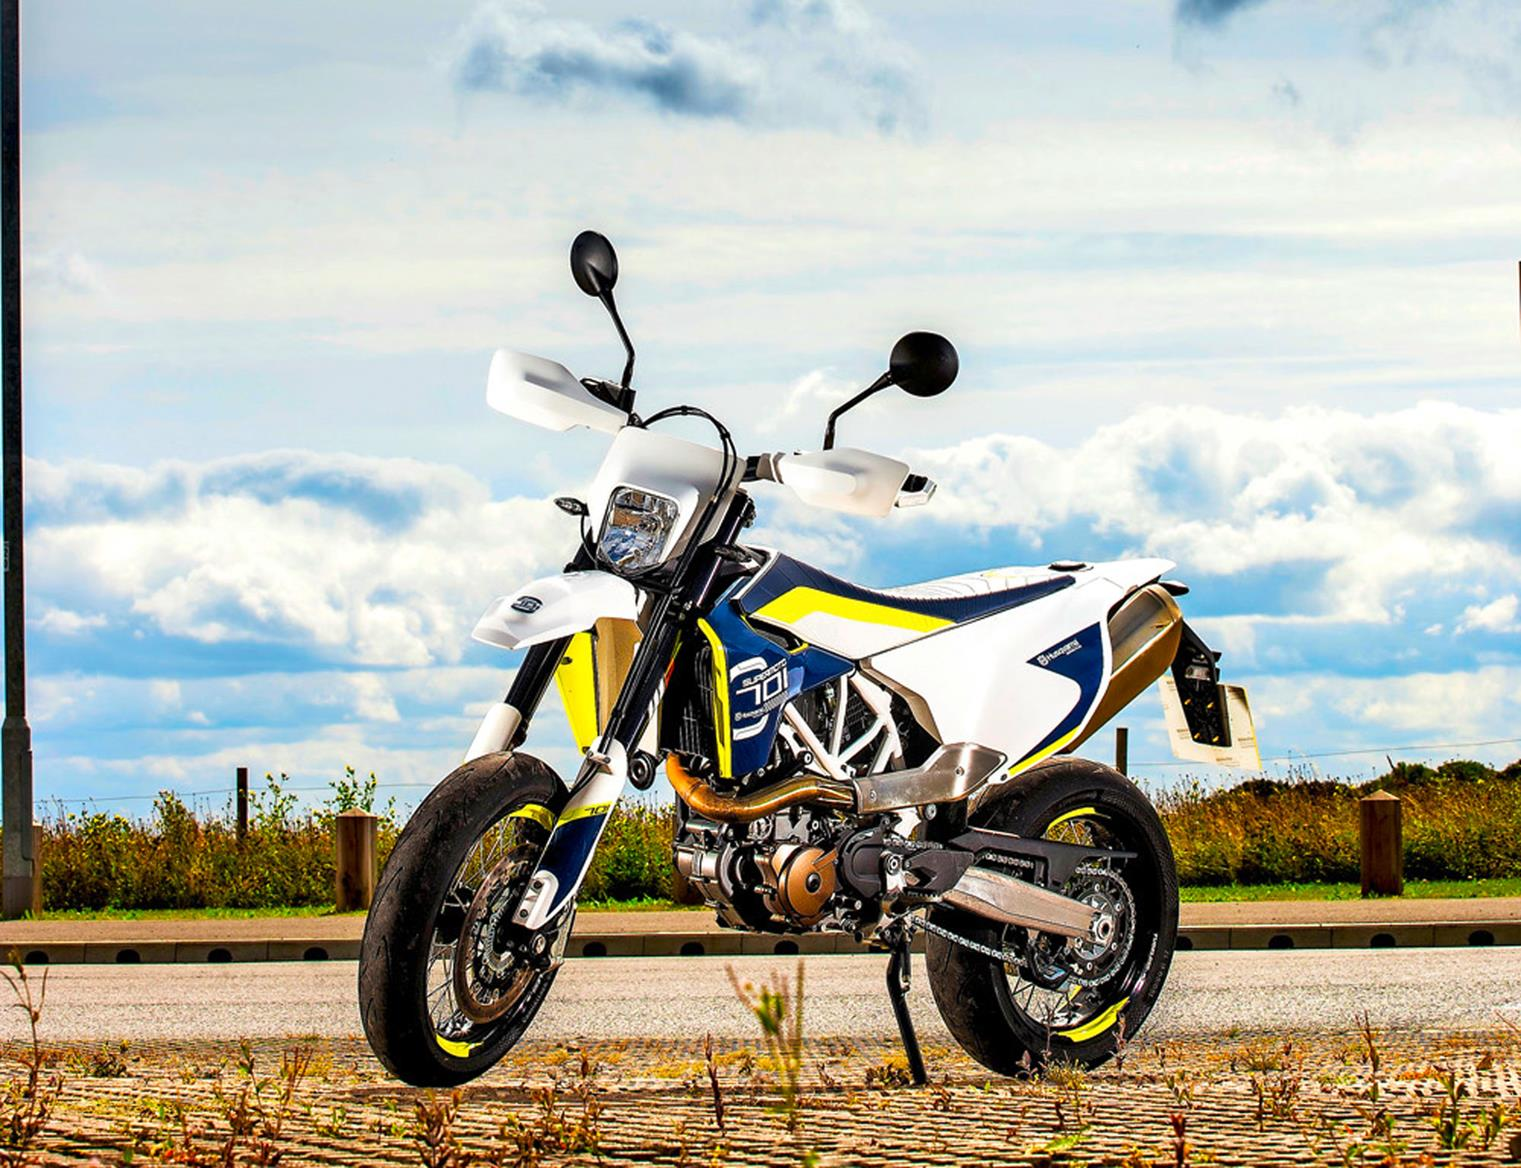 Husqvarna 701 Supermoto 2015 On Motorcycle Review Mcn